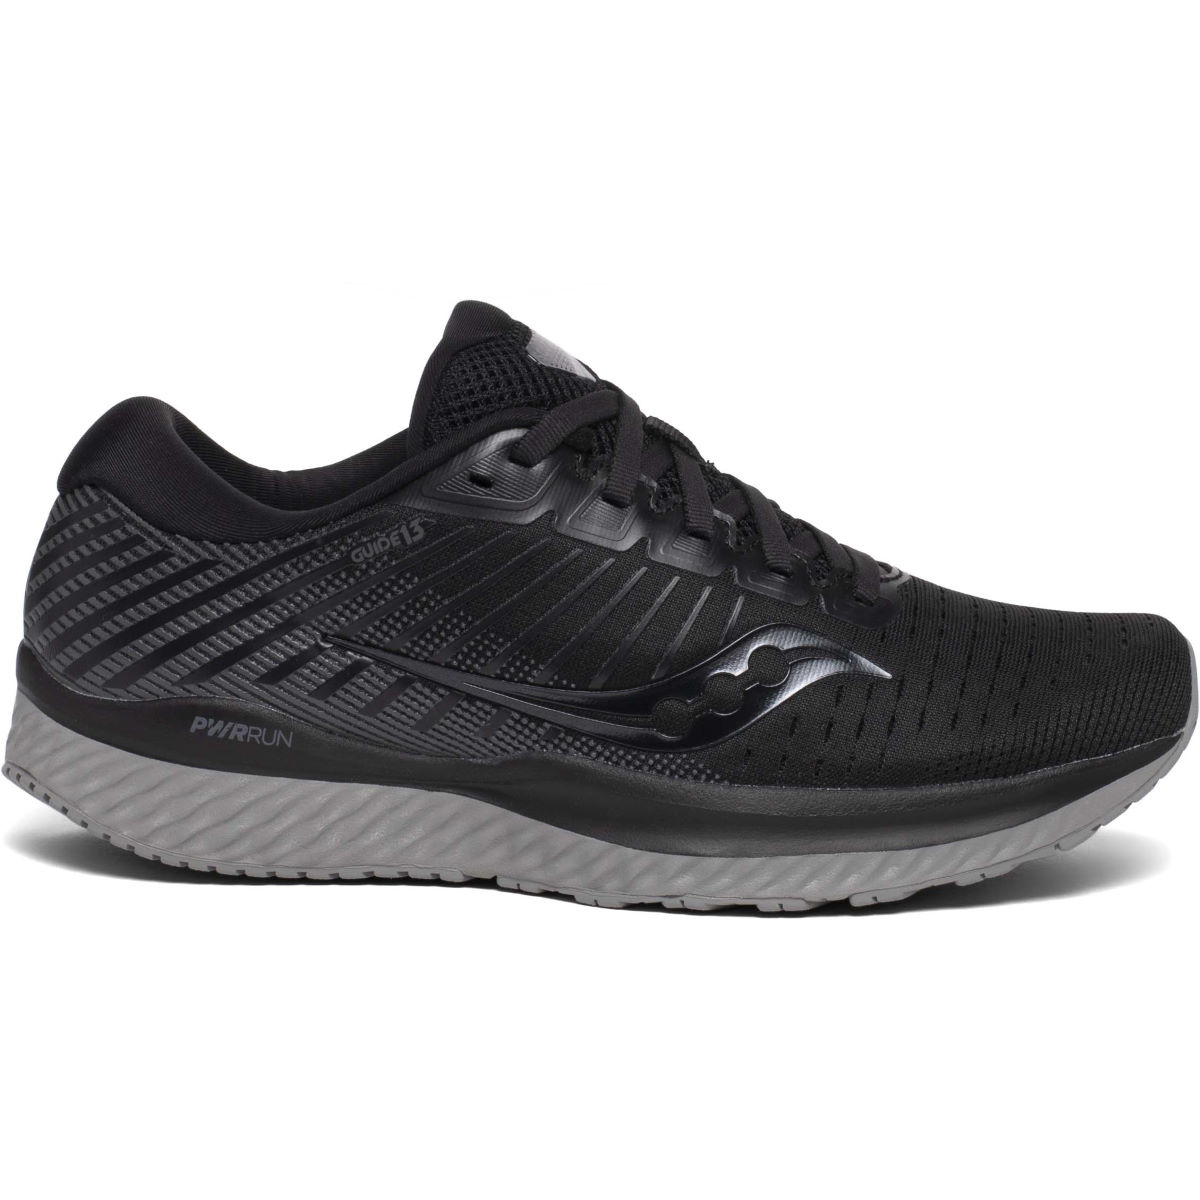 Saucony Women's Guide 13 Running Shoes - 9.5 Blackout   Running Shoes